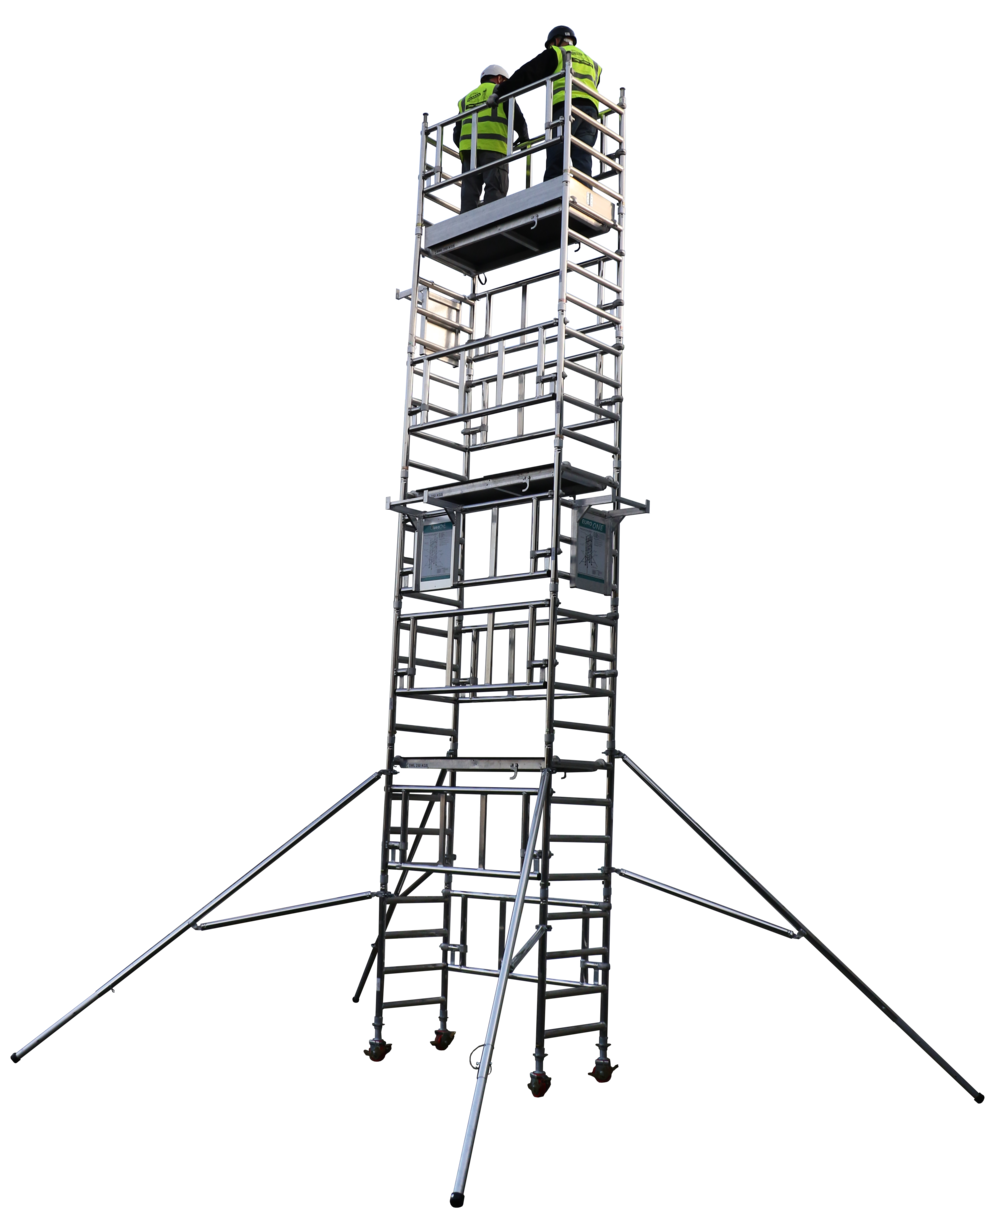 euro towers, euro one 2, aluminium tower, access, working at heights, pasma, ladders, access, training